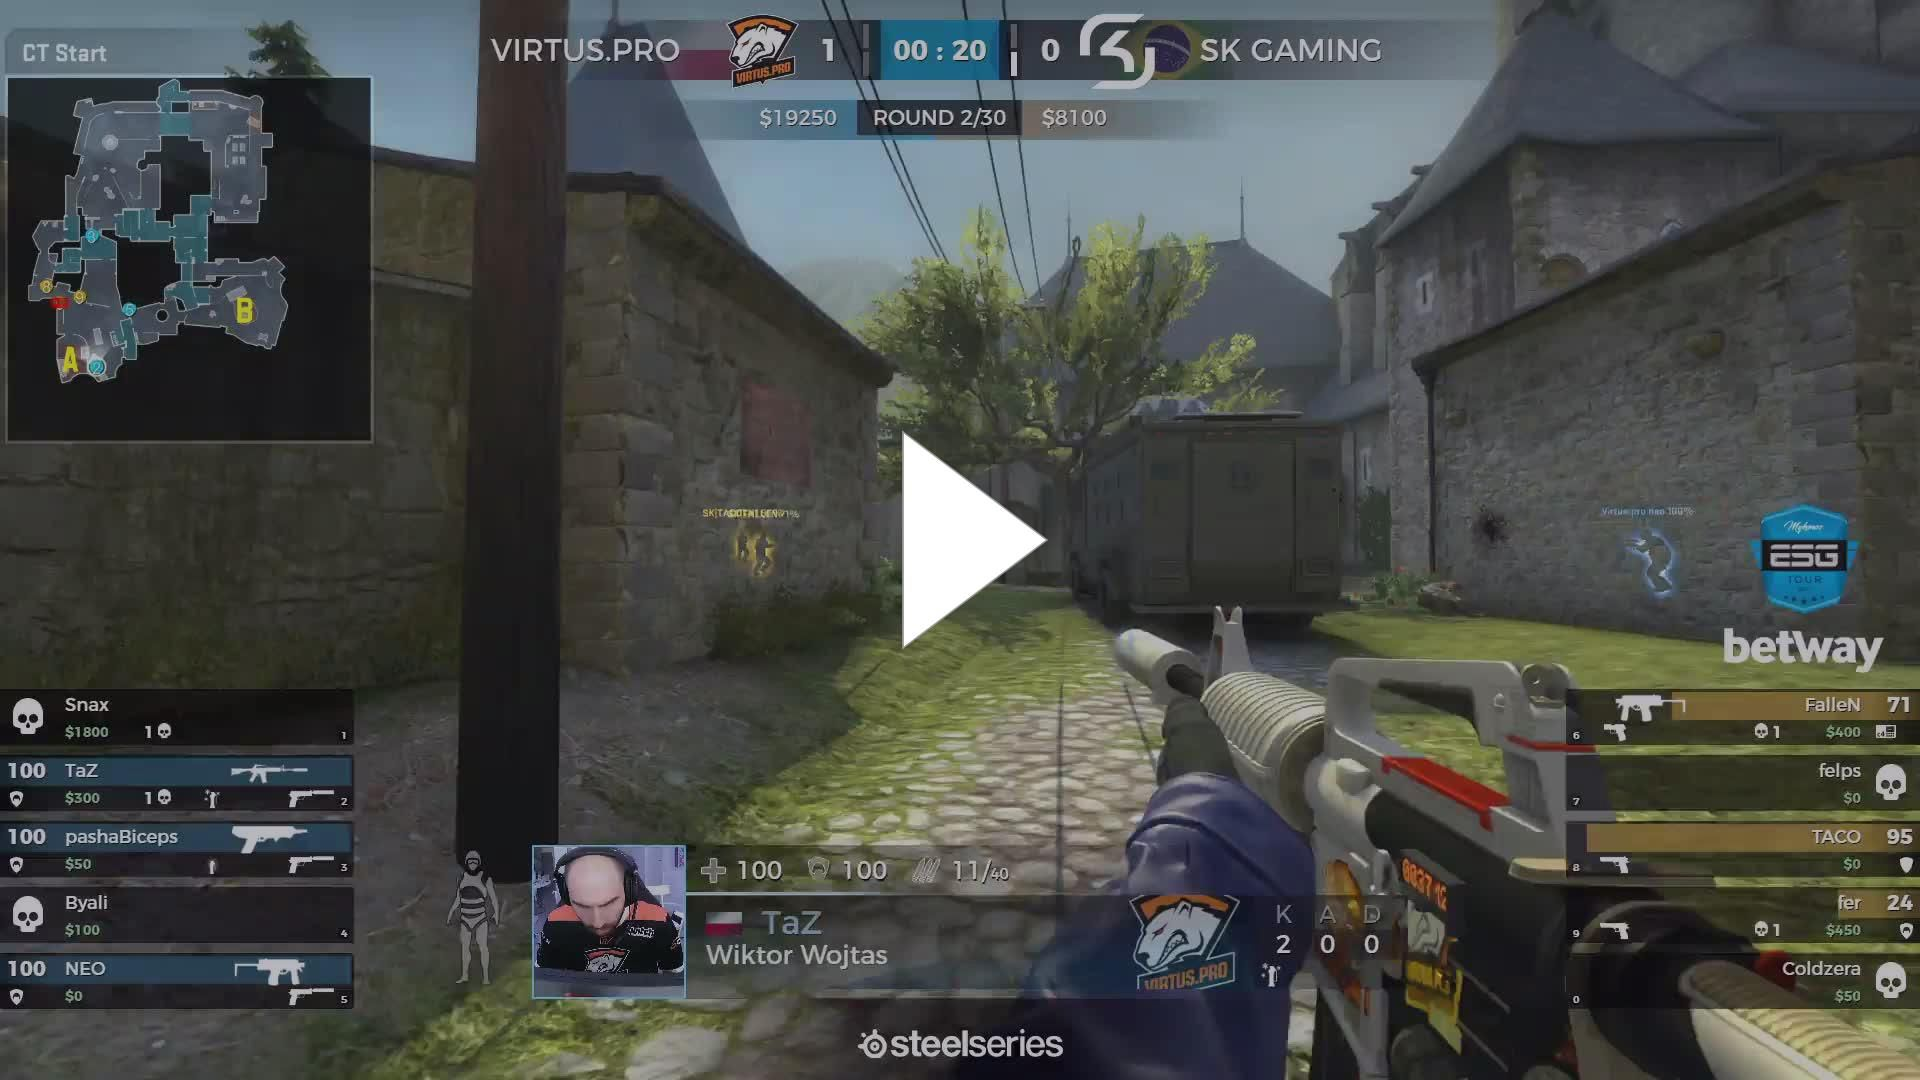 Casterexe Has Stopped Working Games Globaloffensive Csgo